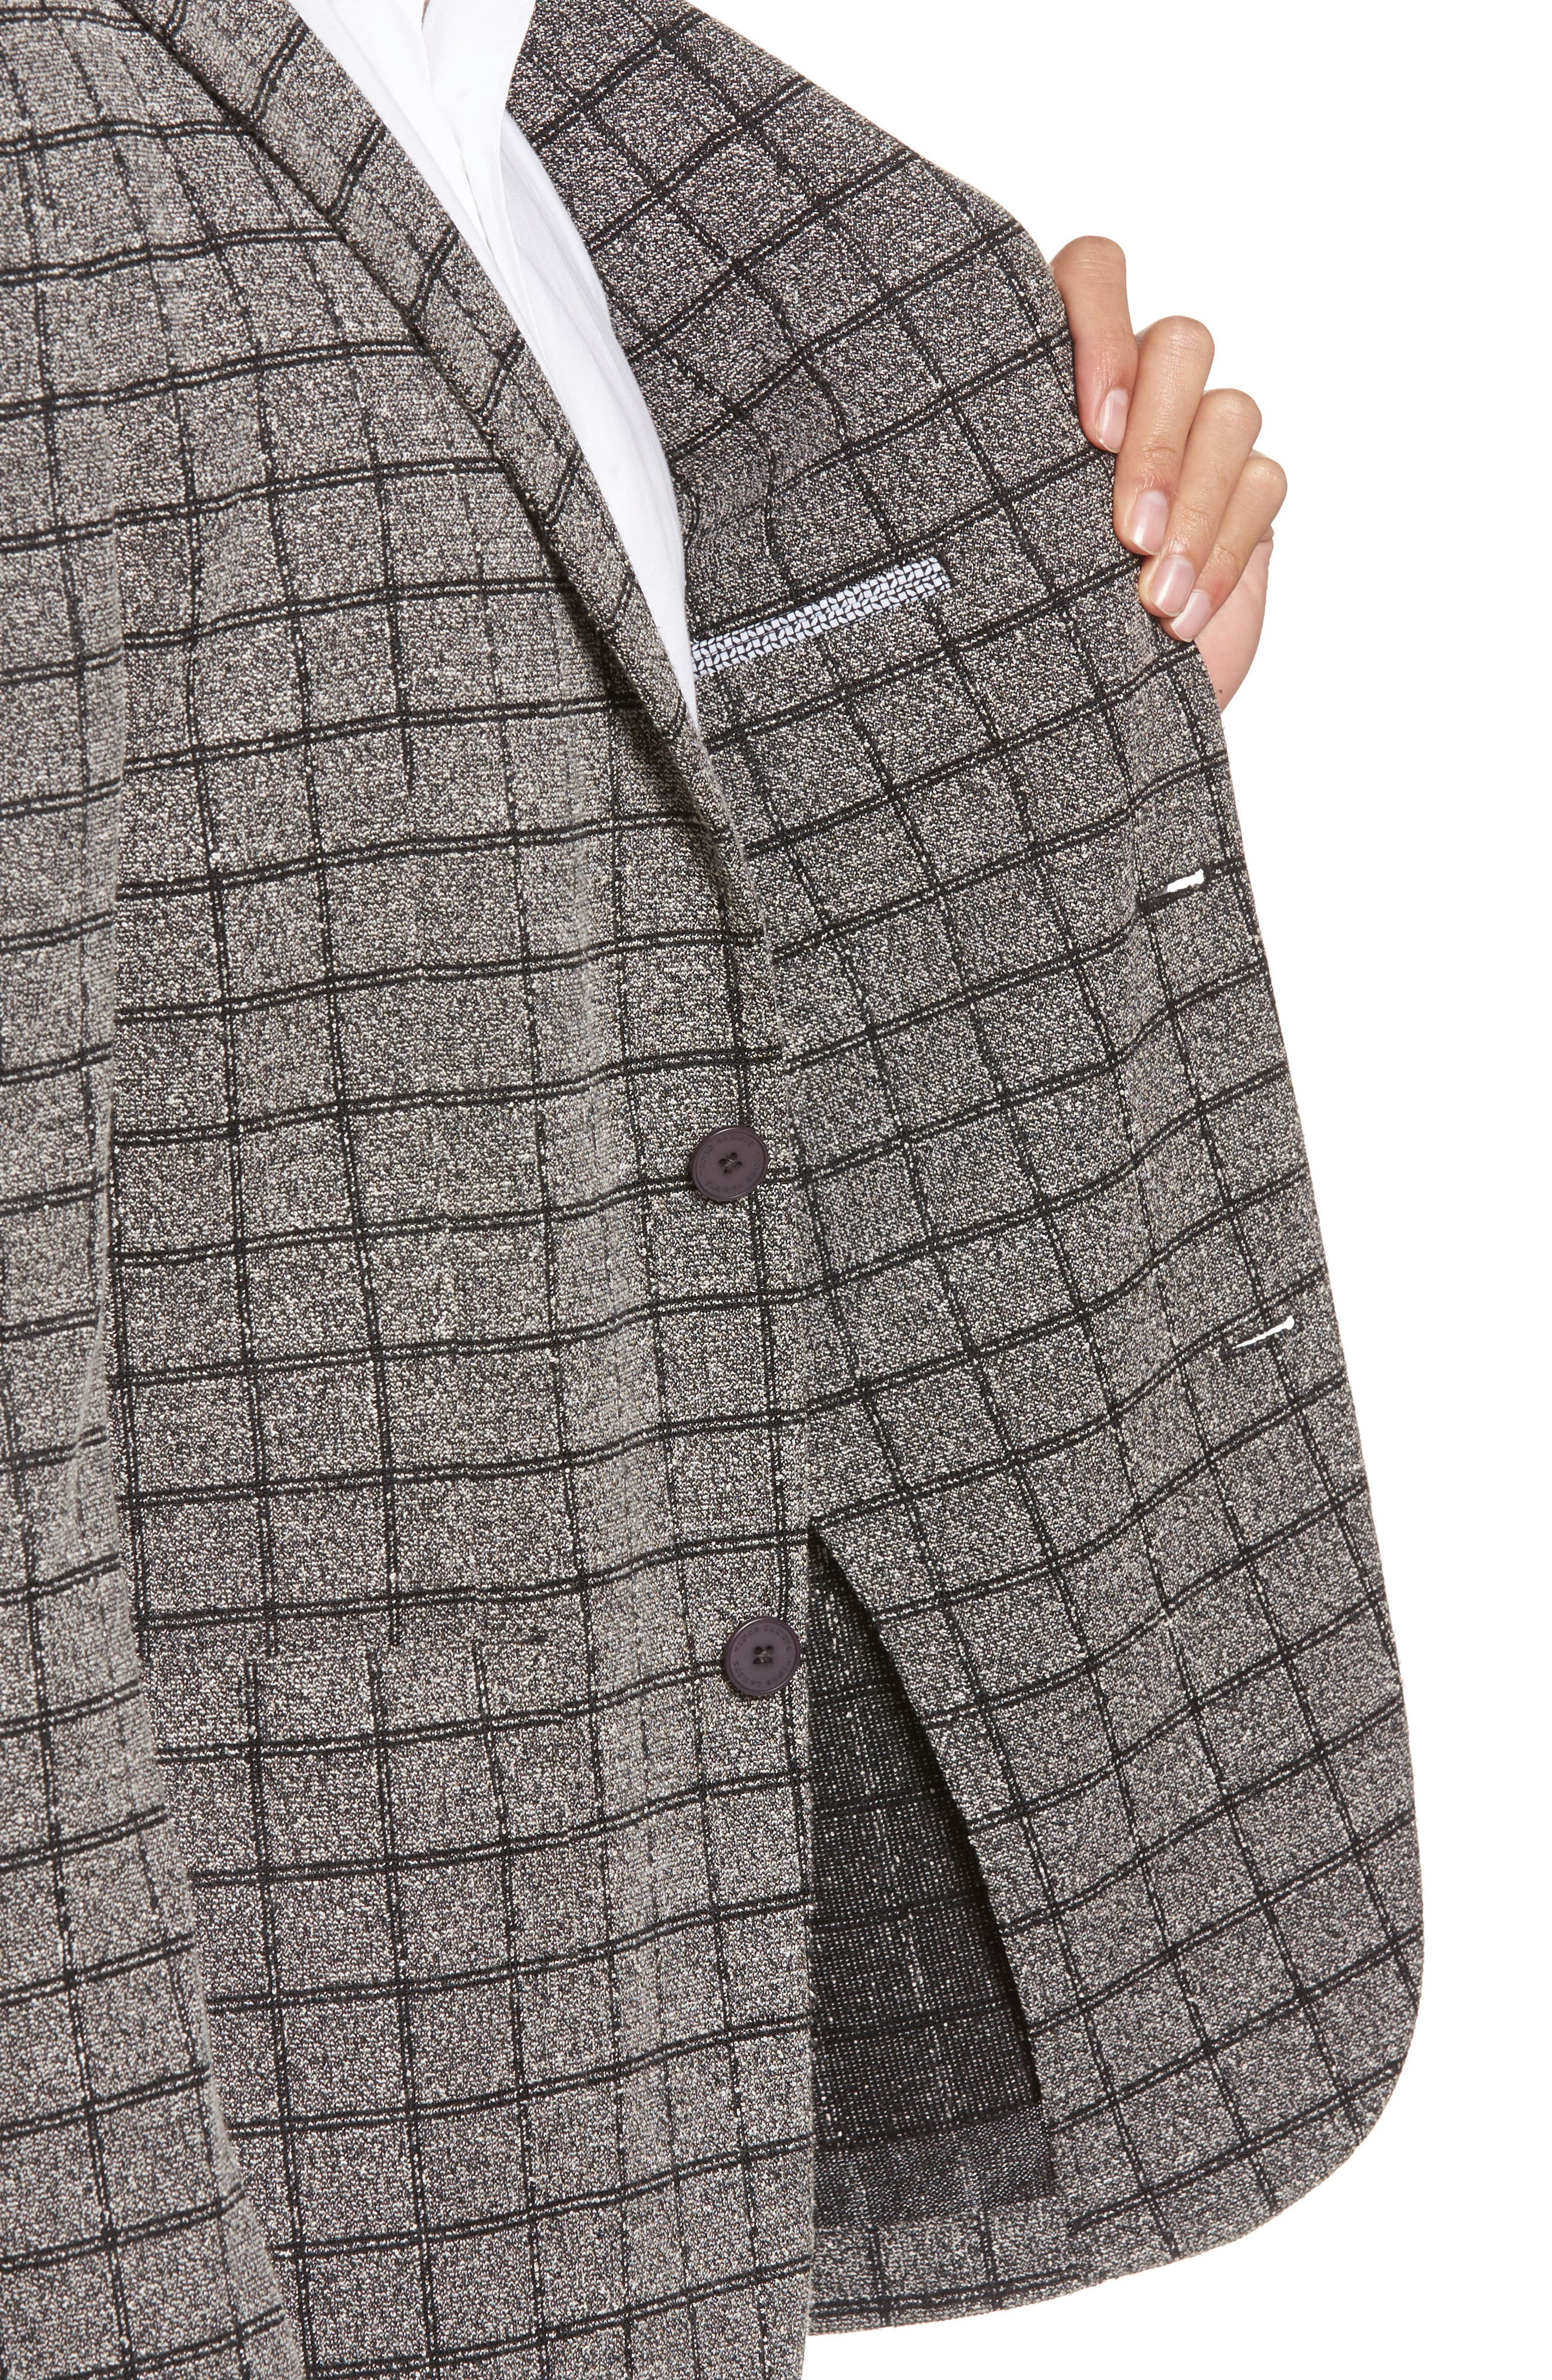 Del Aria Slim Fit Check Knit Jacket,                             Alternate thumbnail 4, color,